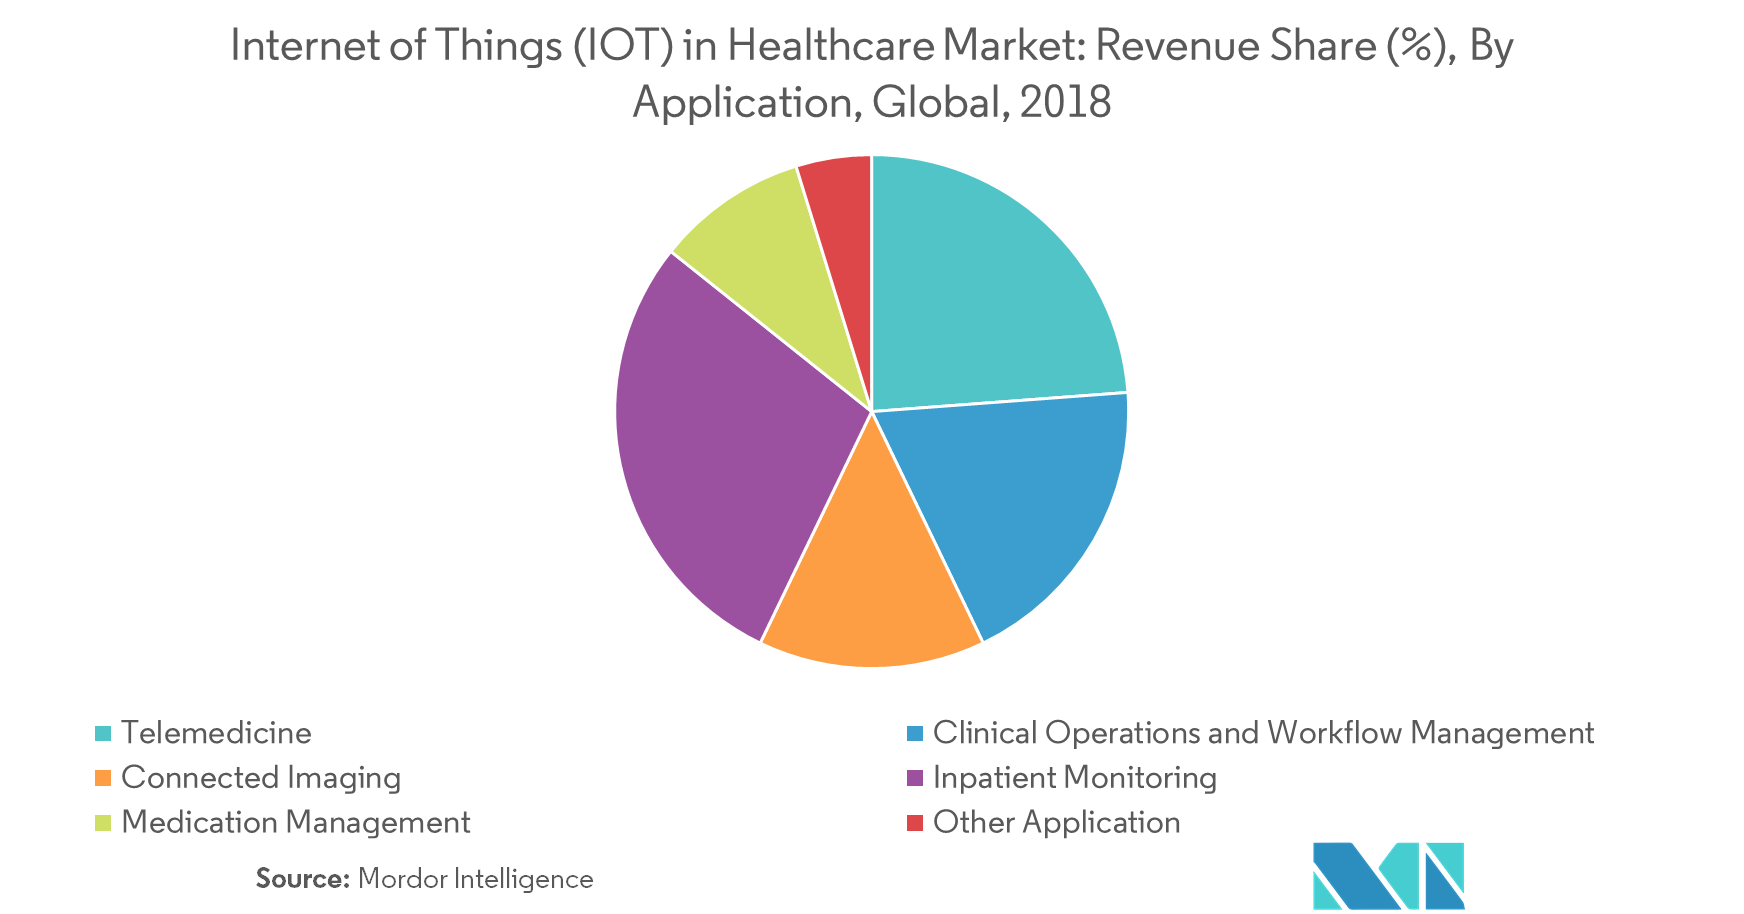 Internet of Things (IoT) in Healthcare Market Latest Trends